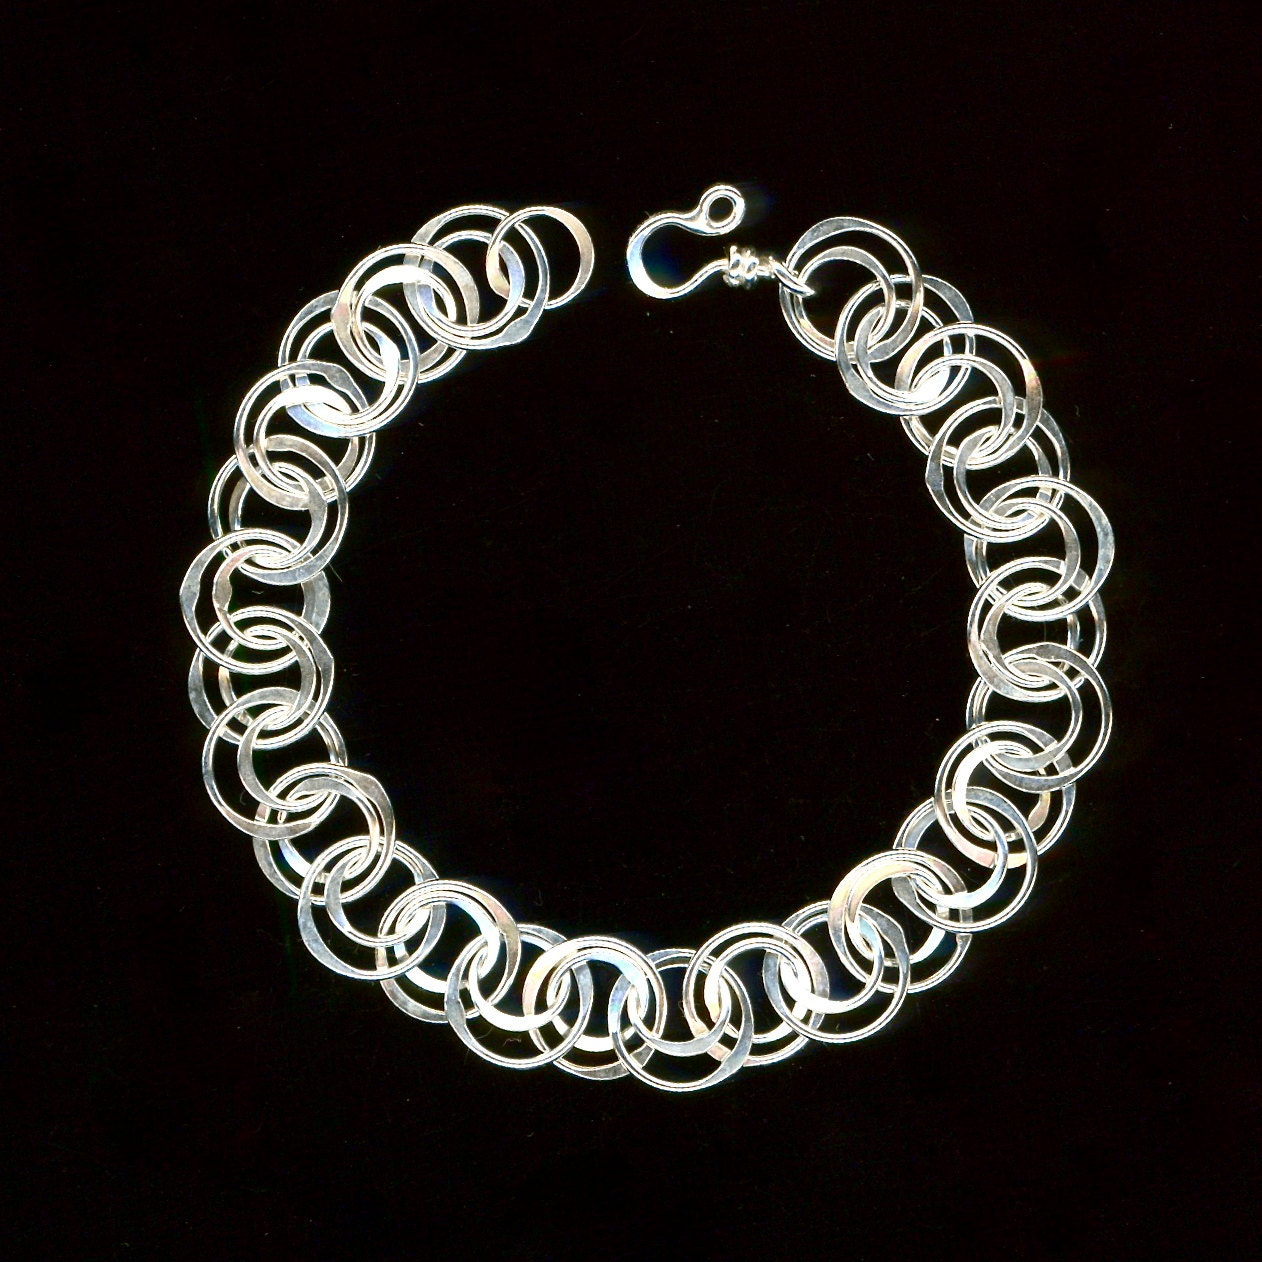 Silver Chain Link Bracelet: Bracelet Chain Link Sterling Silver Circle Chainmaille Wire